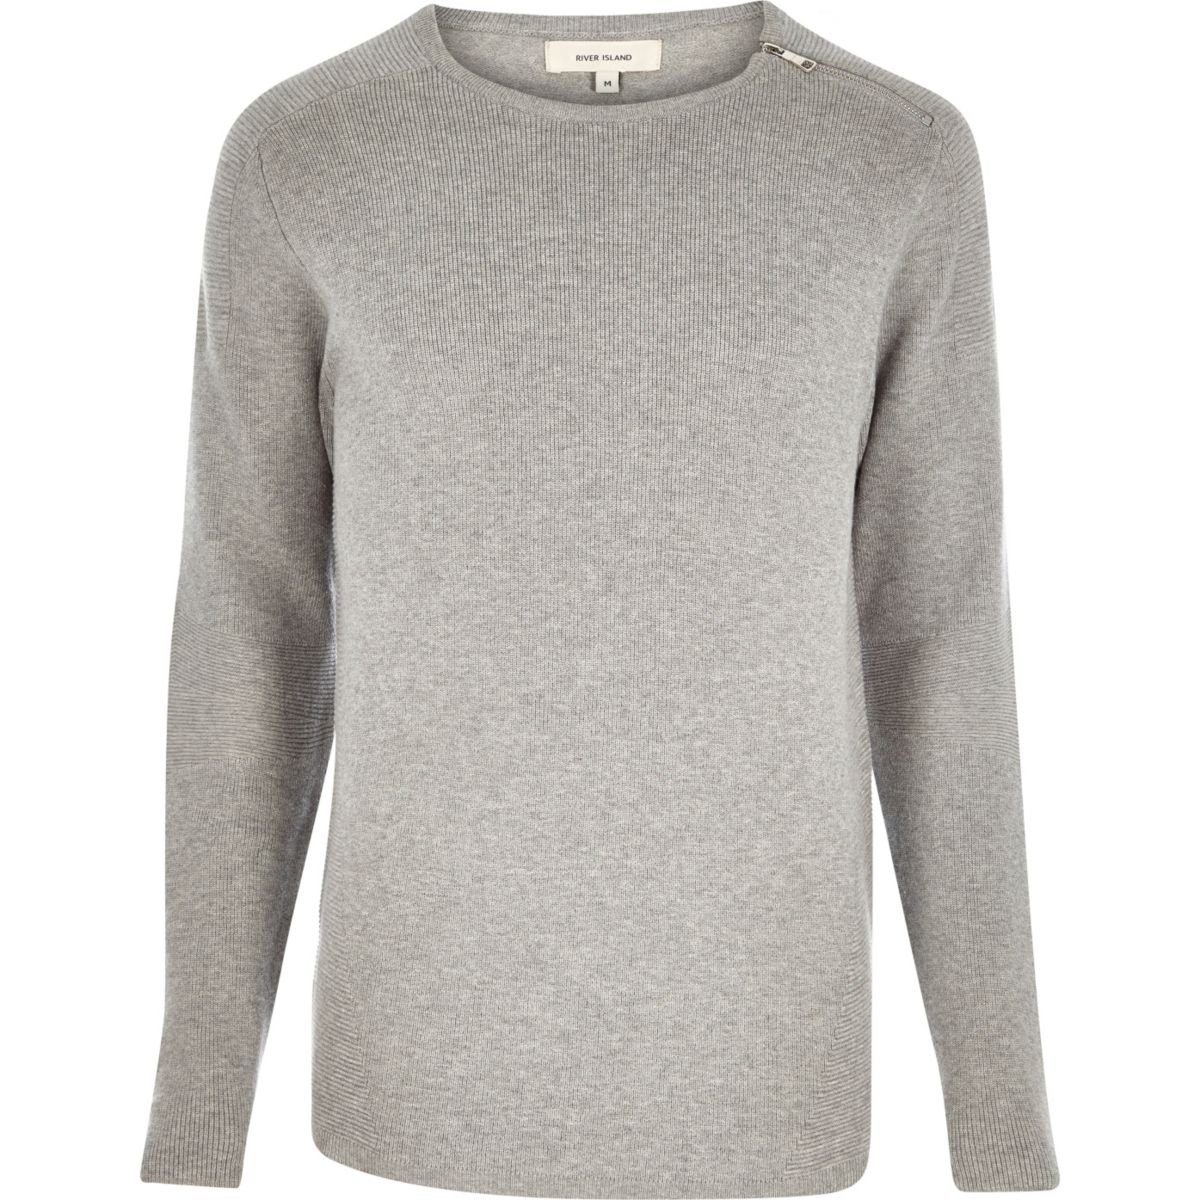 Grey zip neck jumper